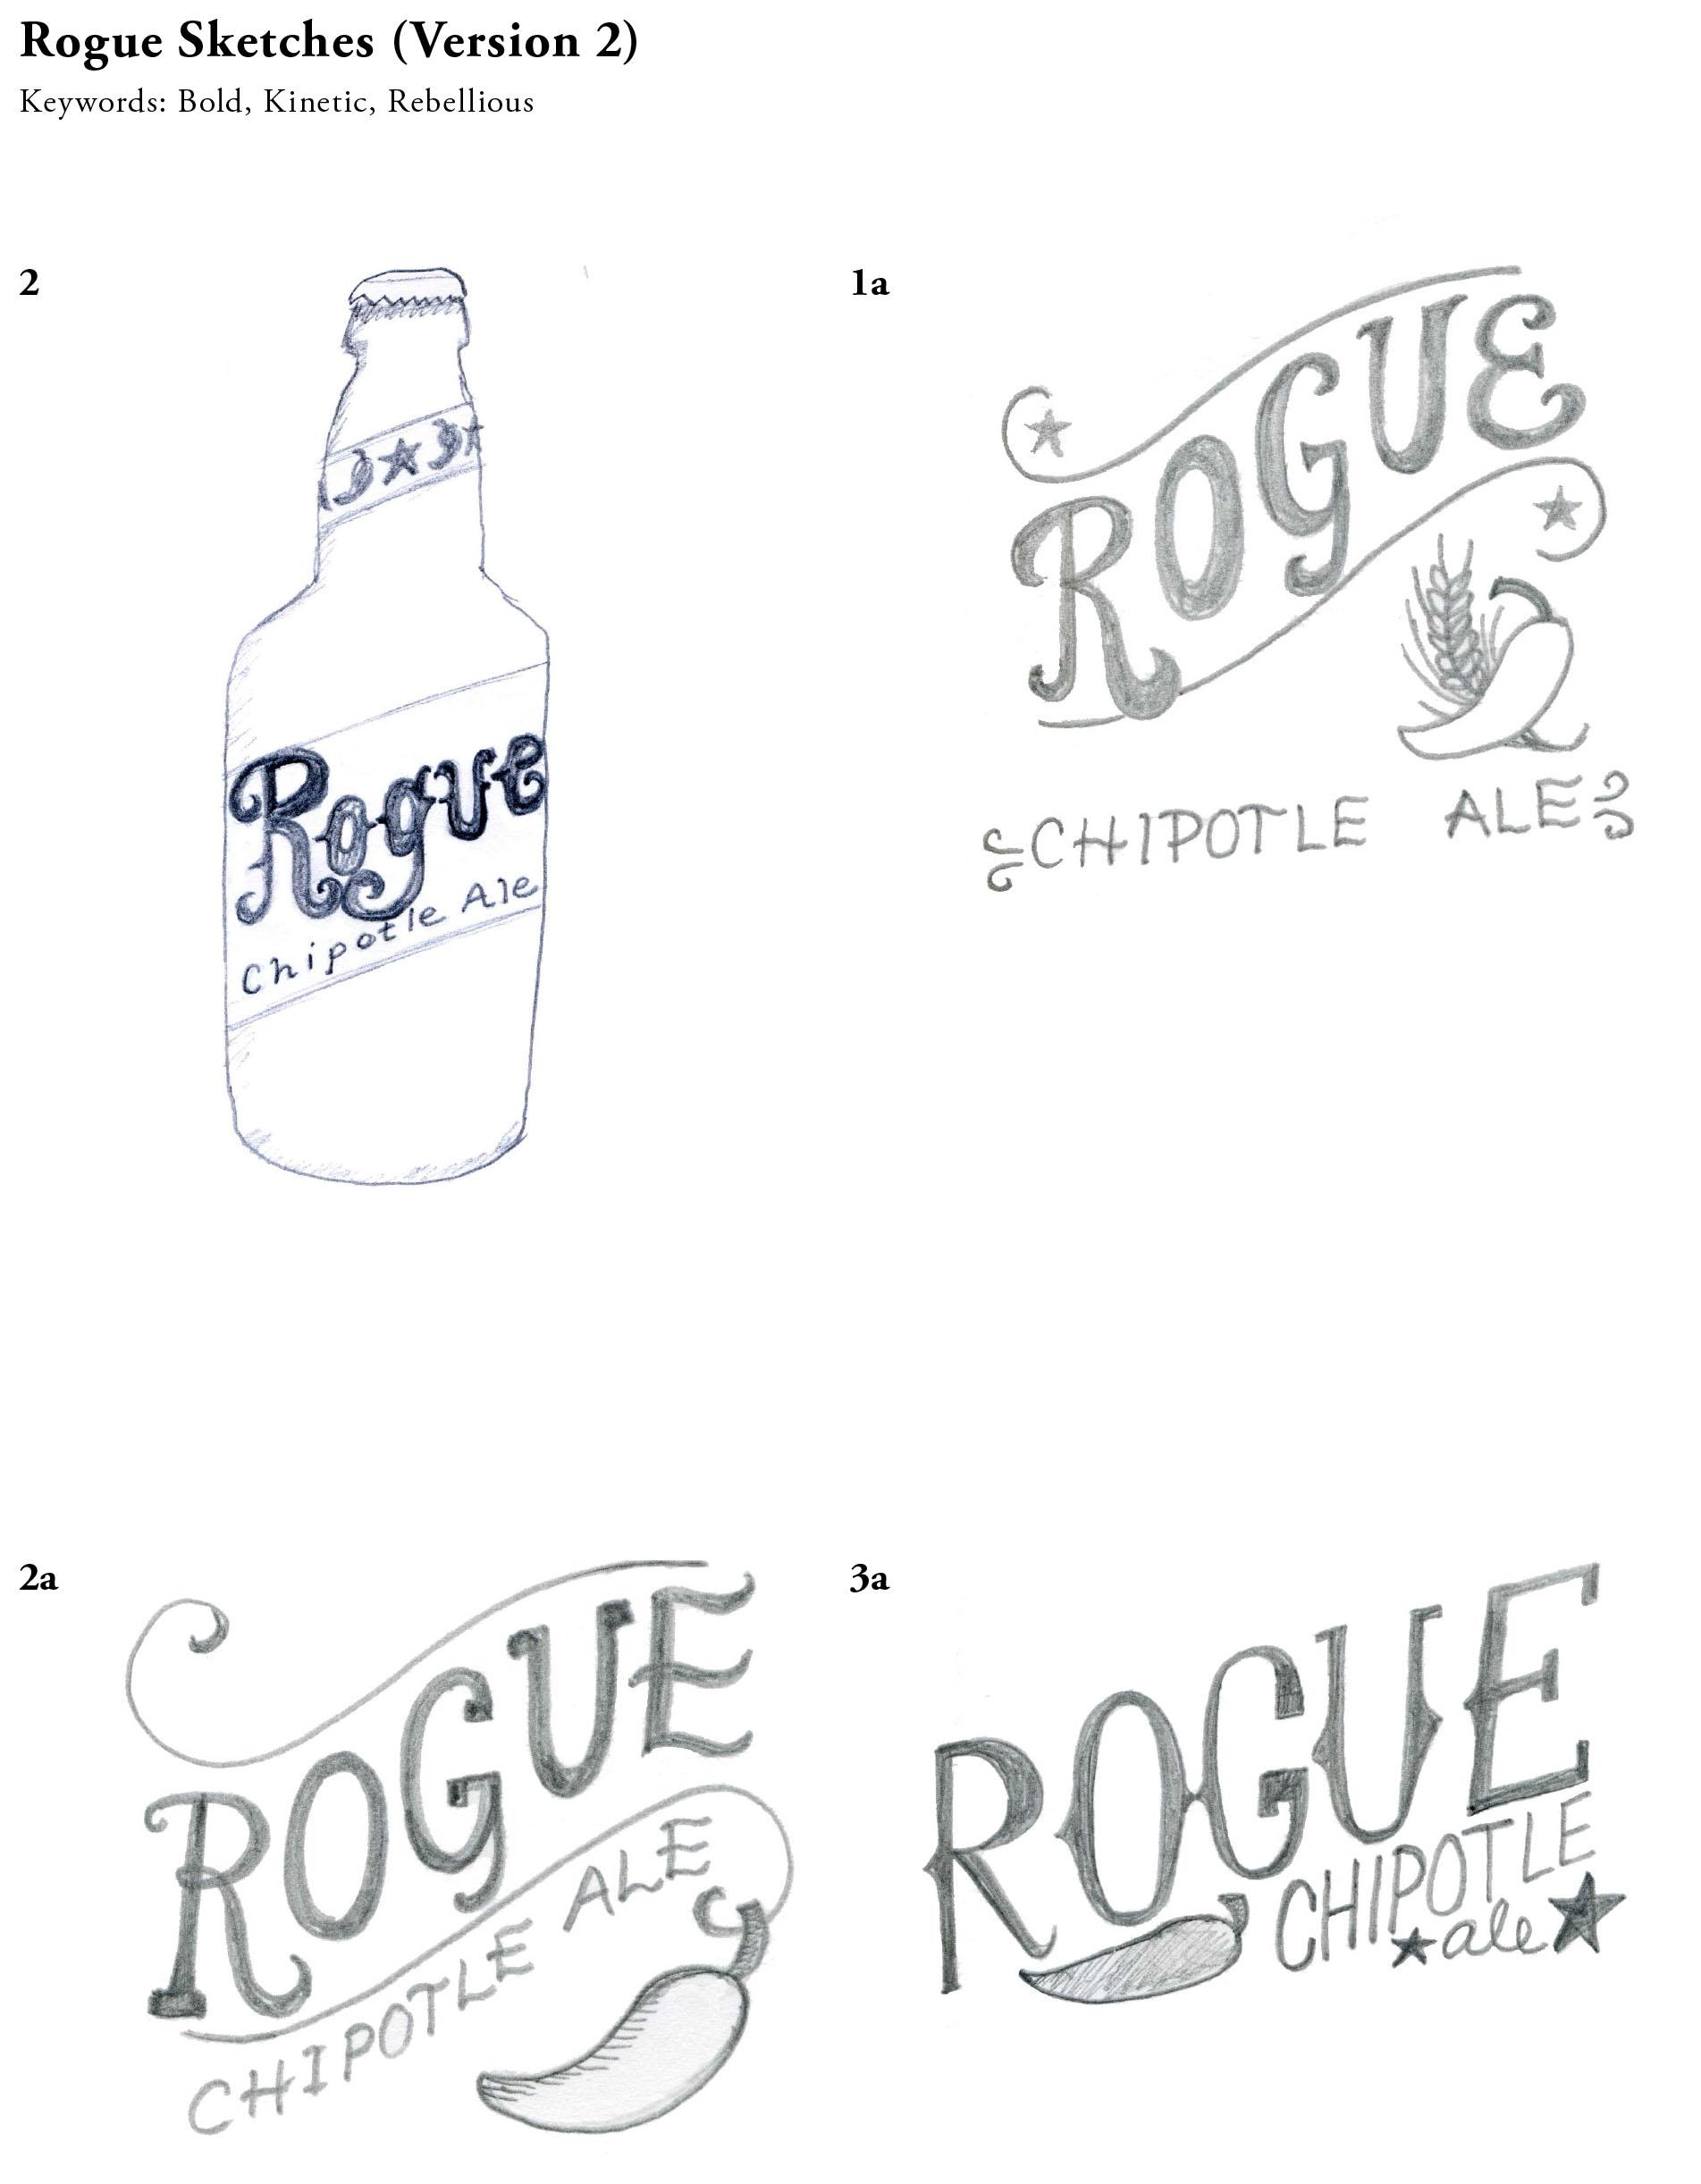 Bottle Label Redesign for Rogue Brand Chipotle Ale - image 7 - student project